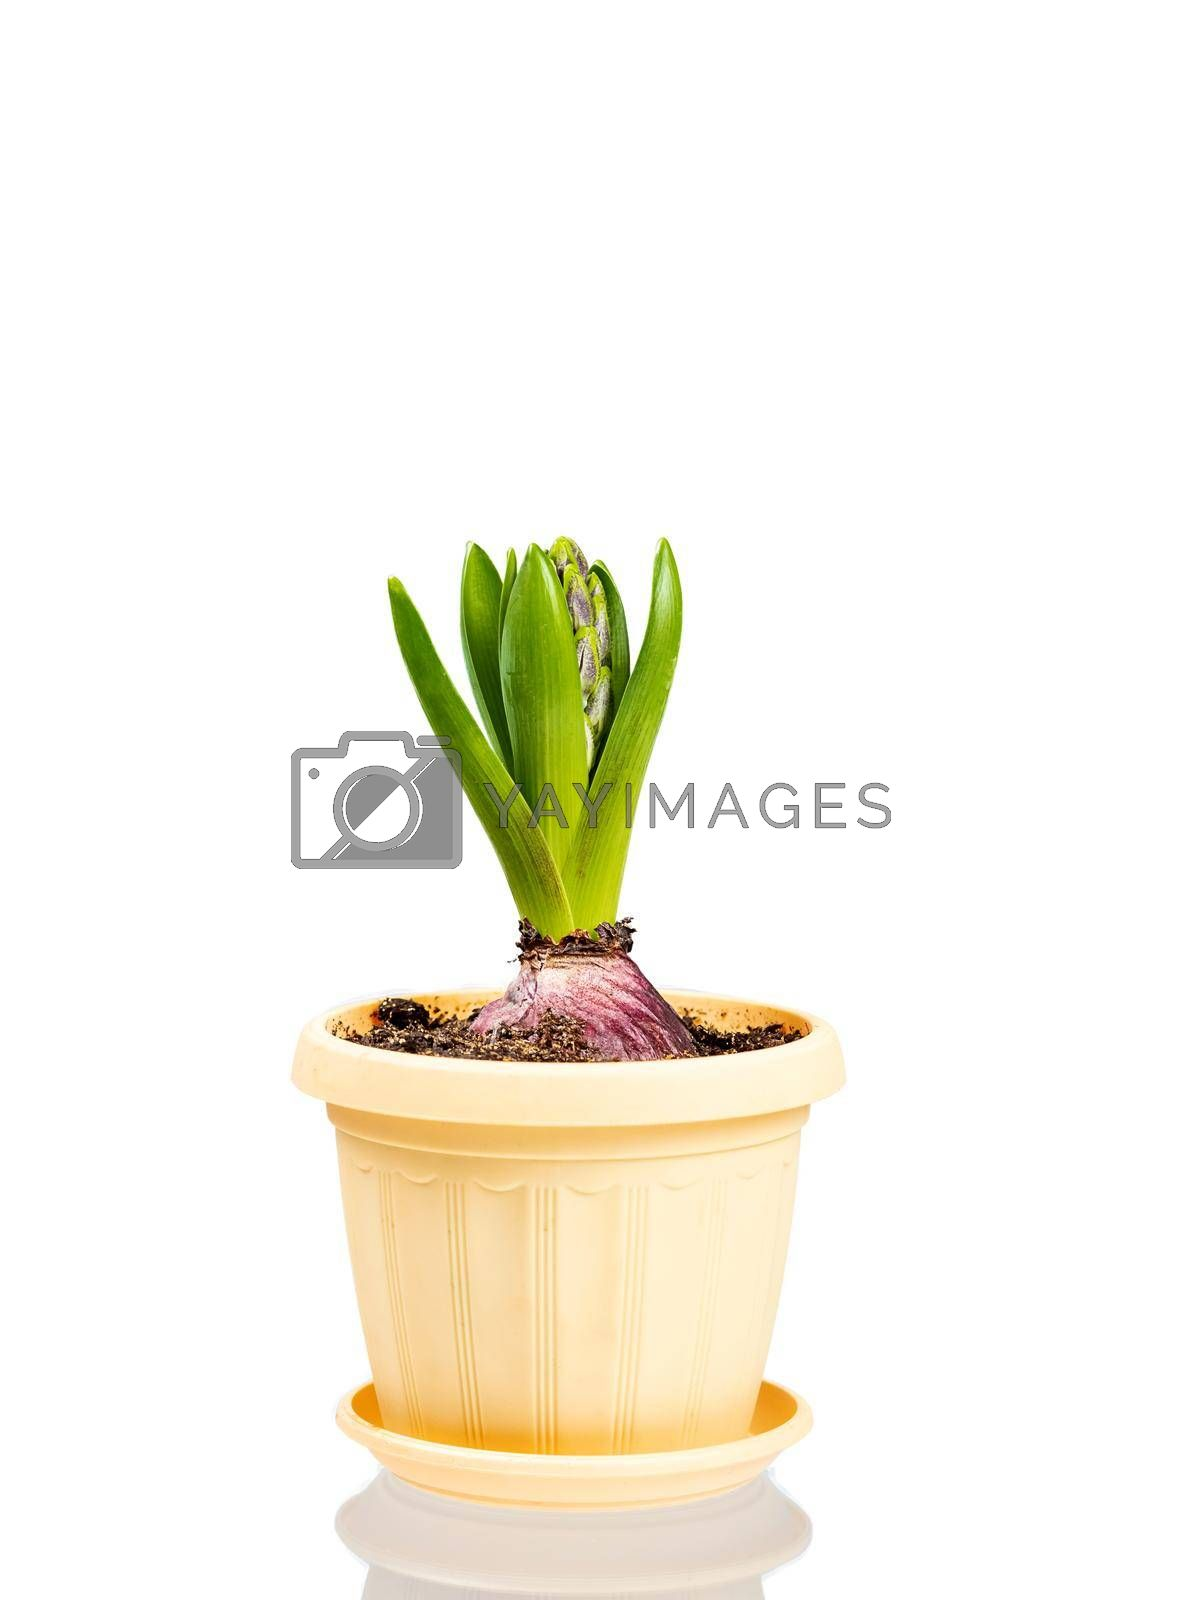 Unblown hyacinth with green leaves and closed buds in a flower pot isolated on white background